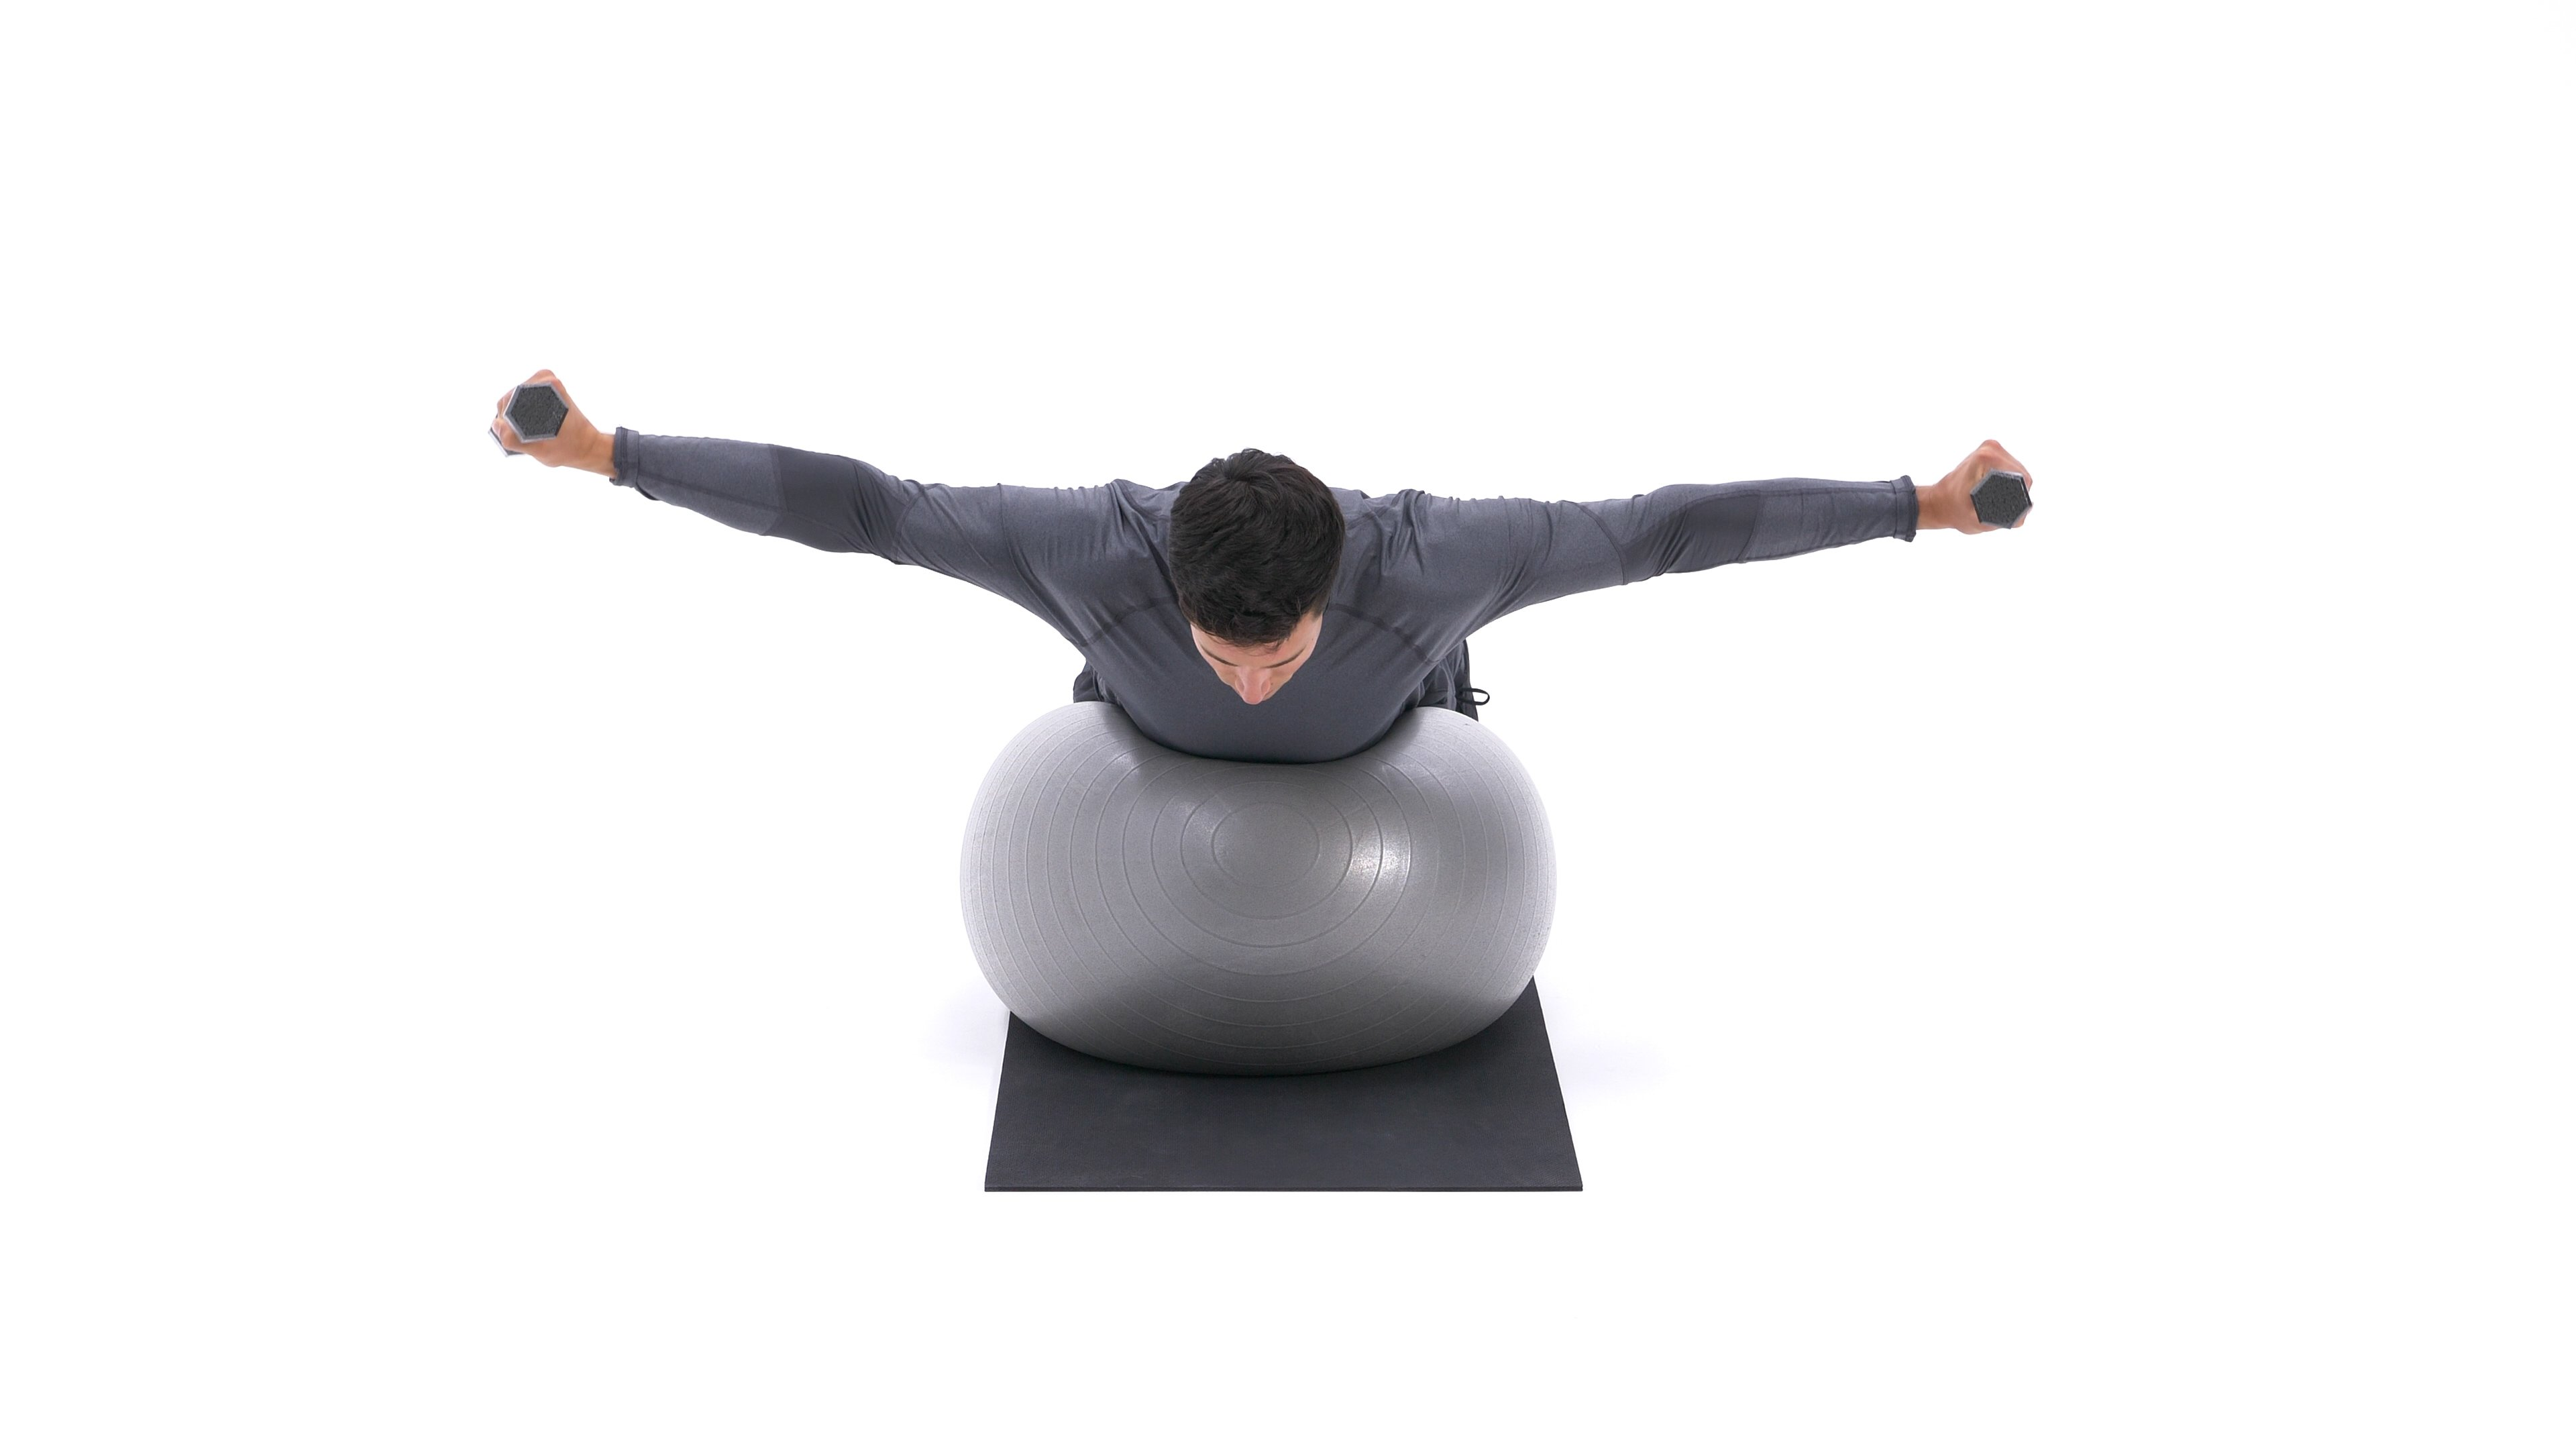 Exercise ball rear delt fly image